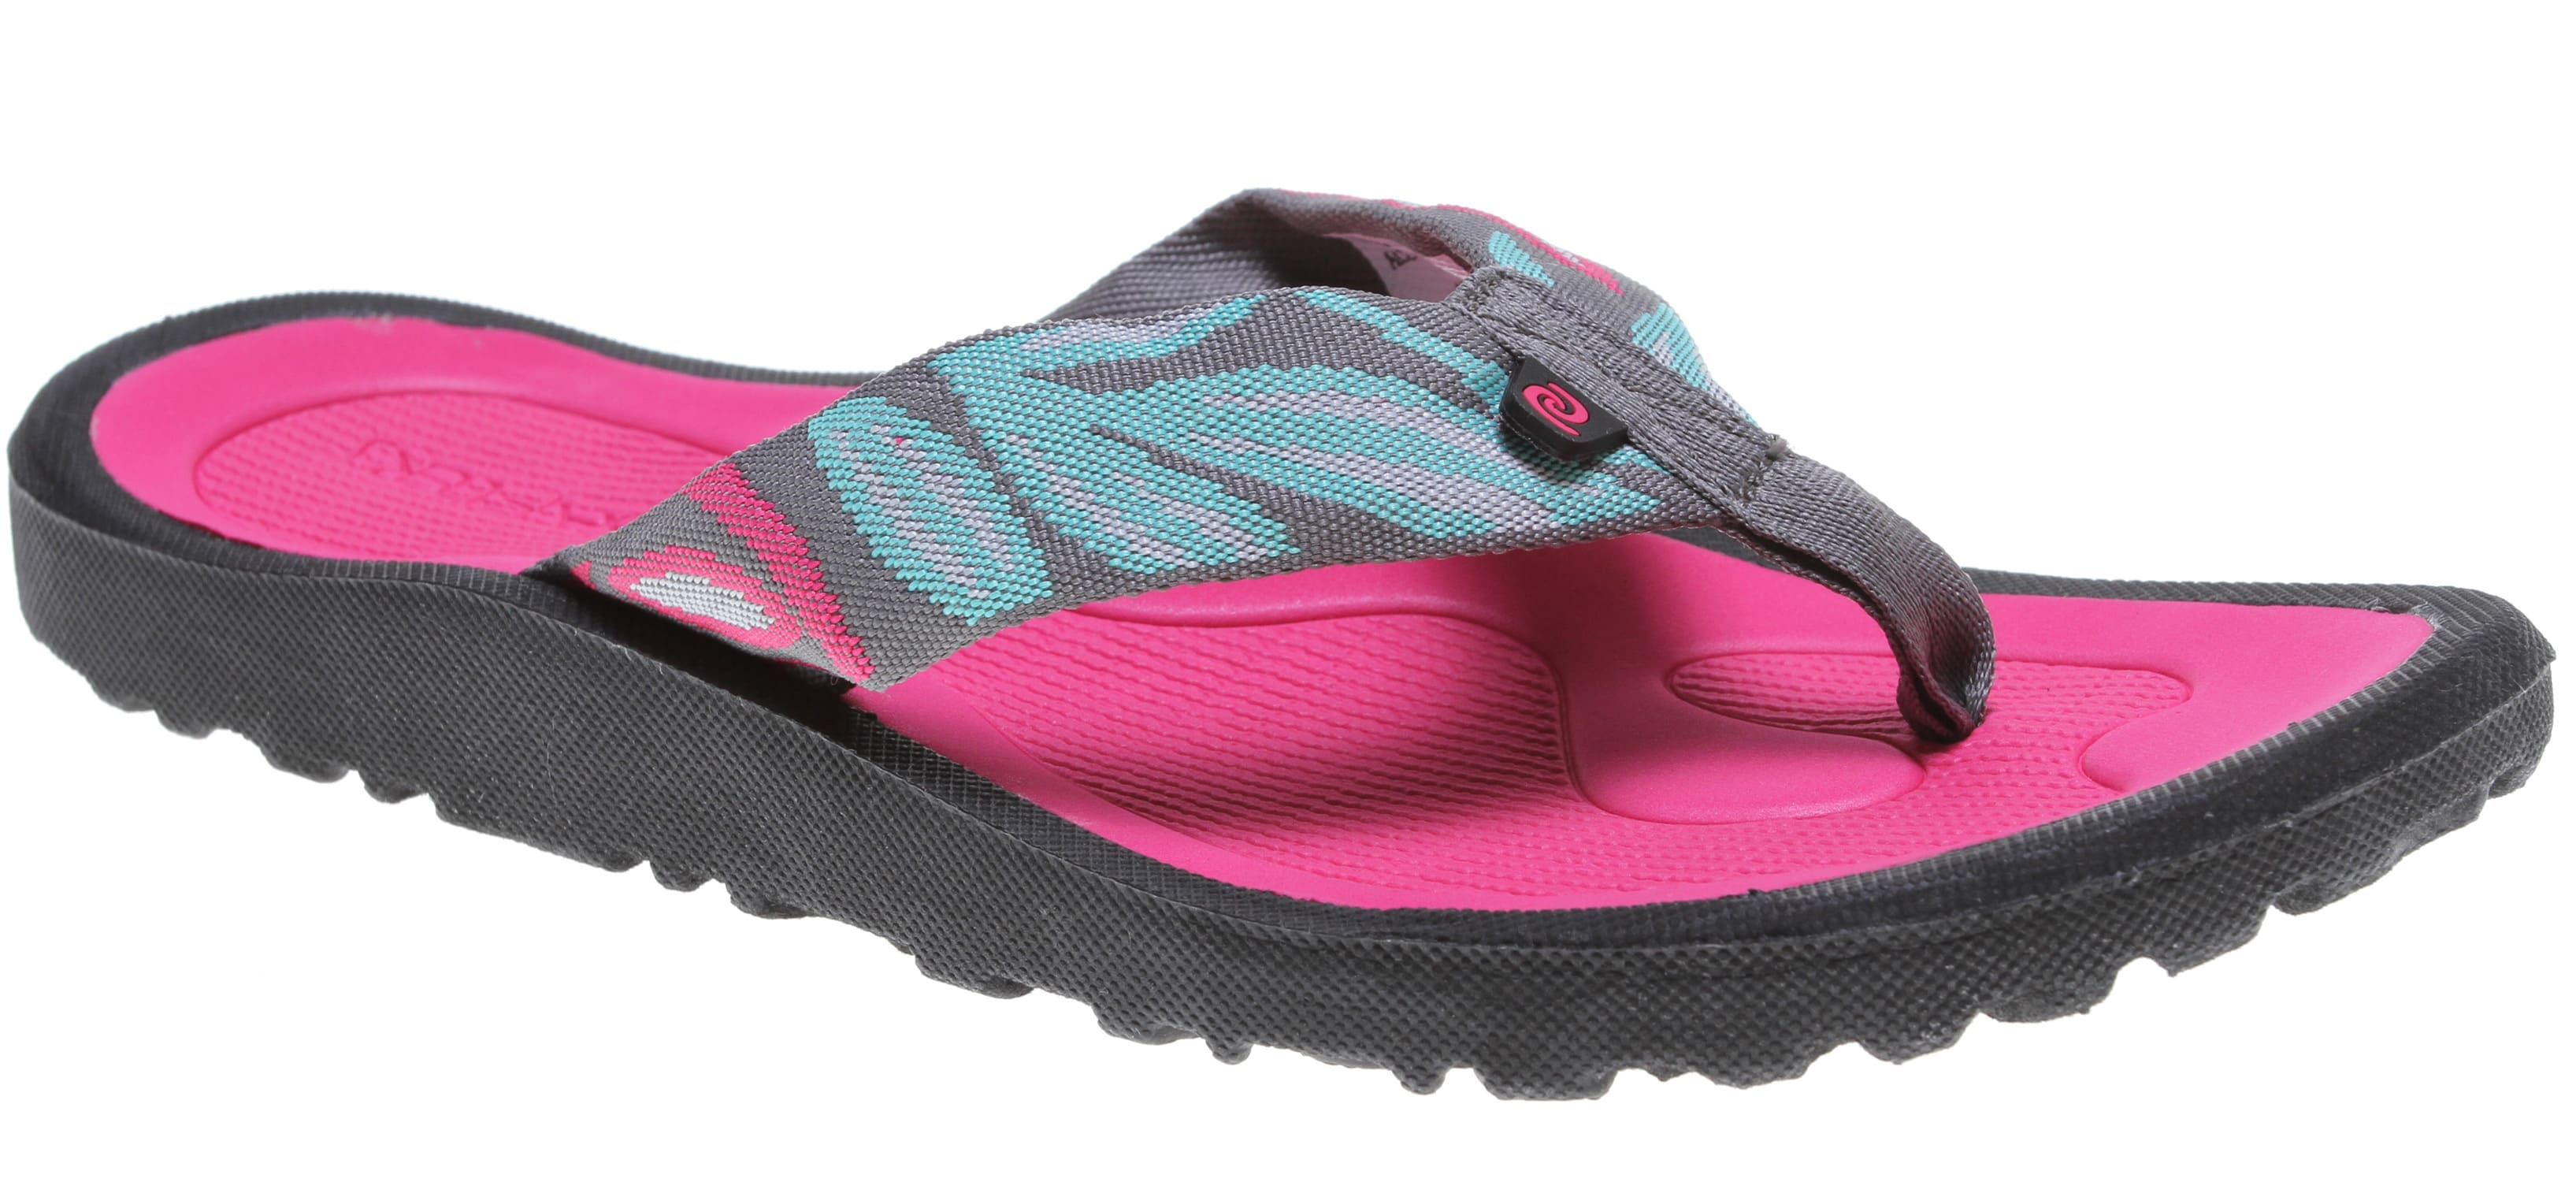 a5f1dcbc6 Rafters Breeze Tropics Sandals - thumbnail 2